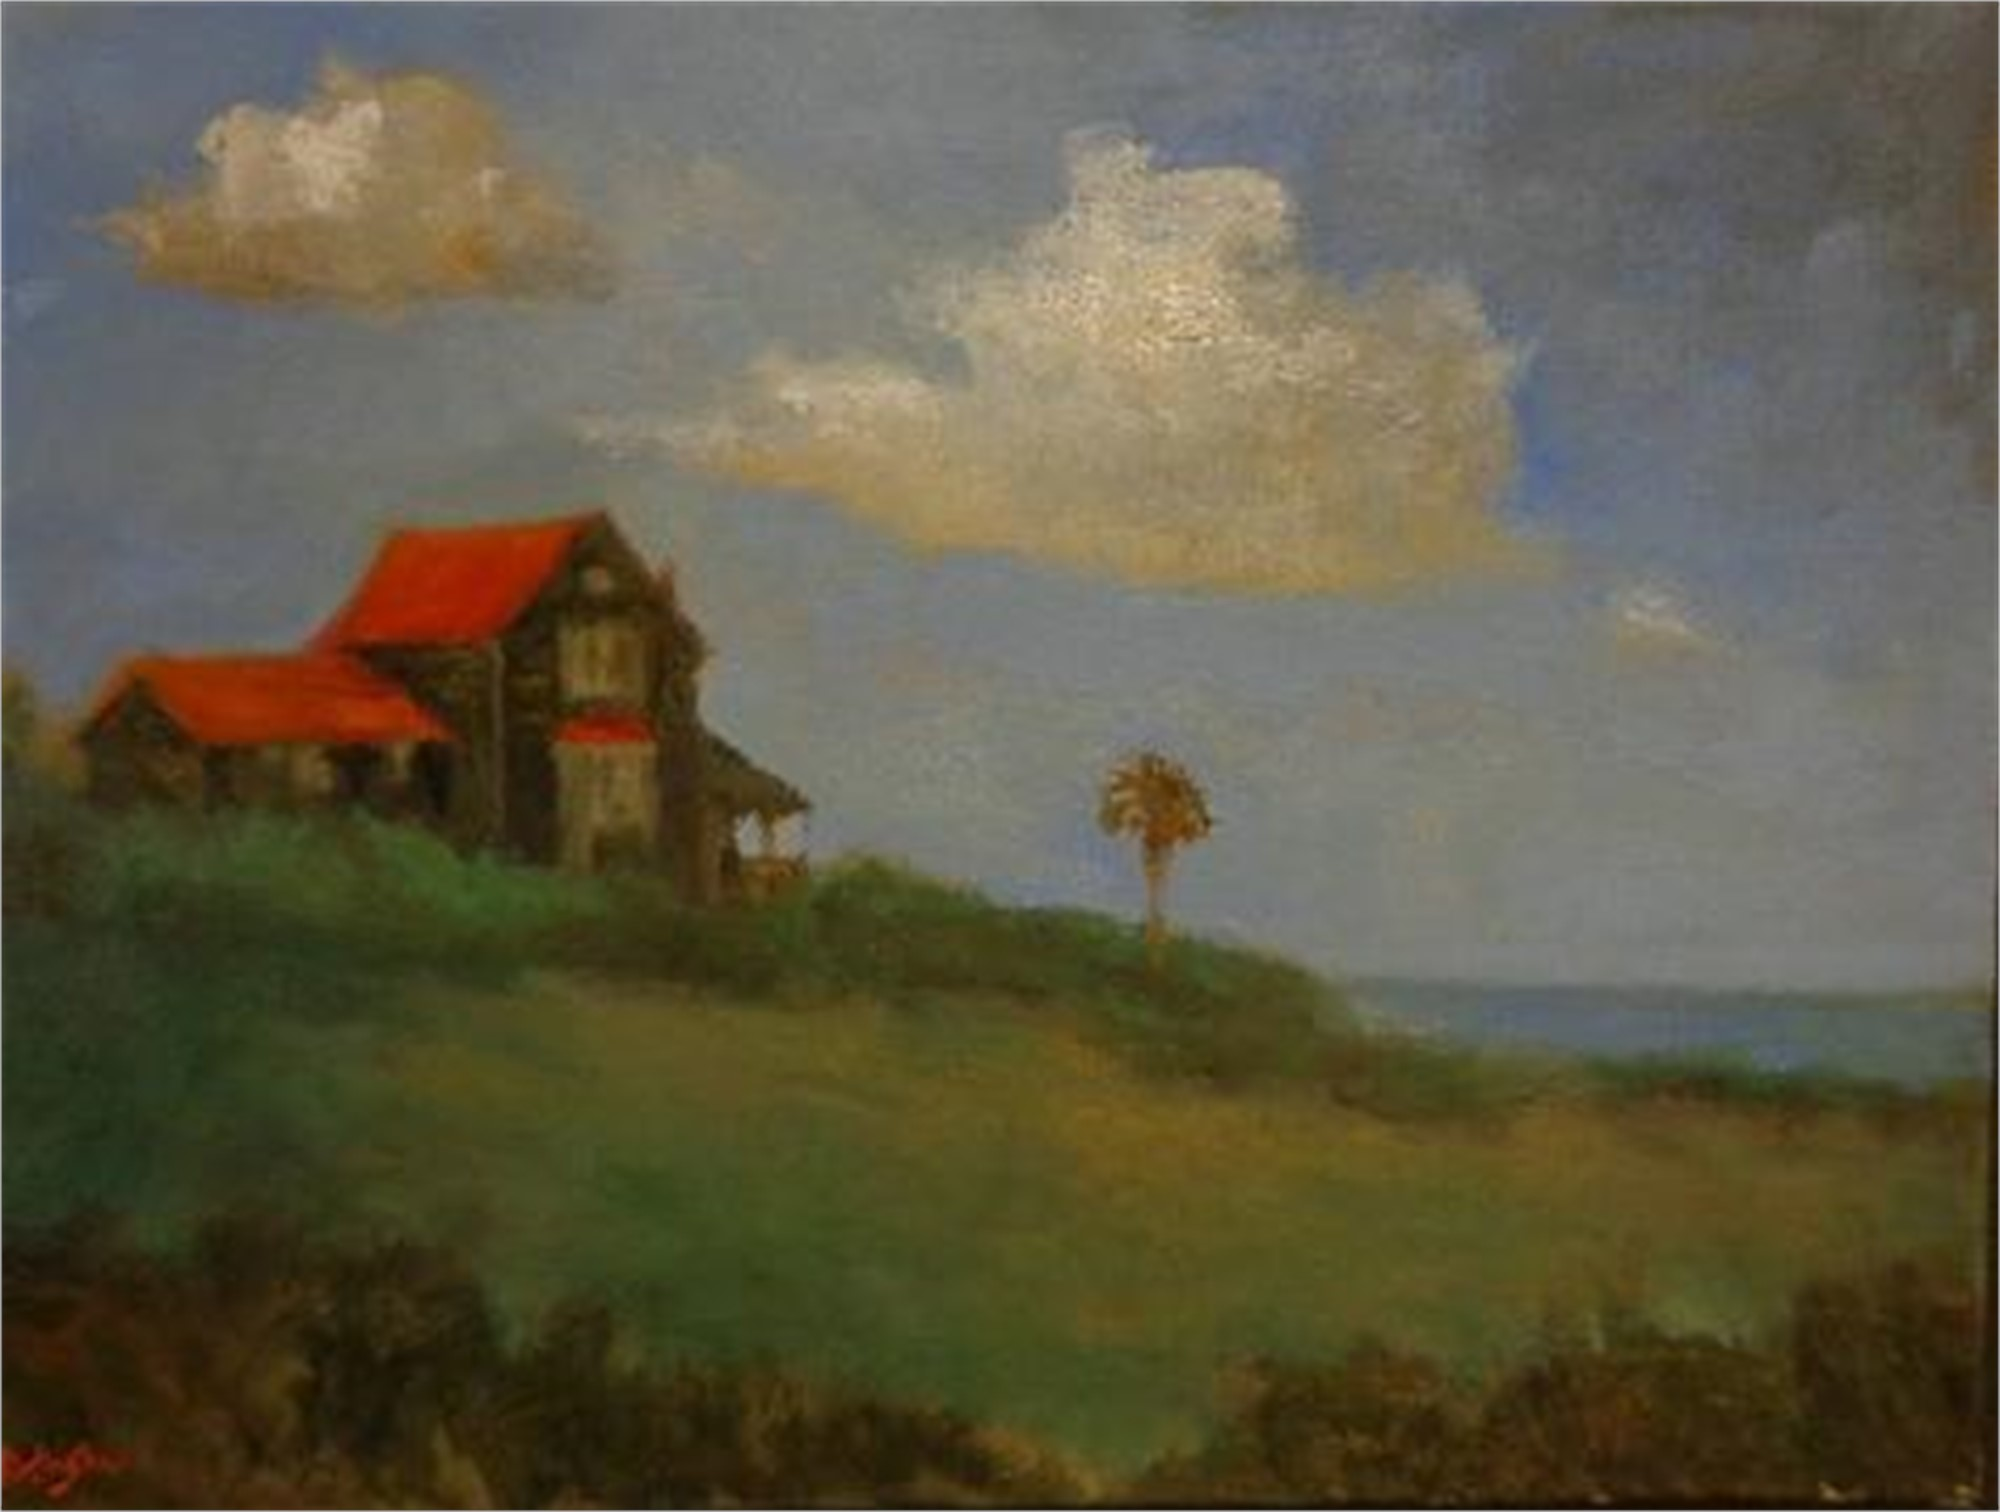 House Beside Sea-Porpoise Point by Jim Darlington